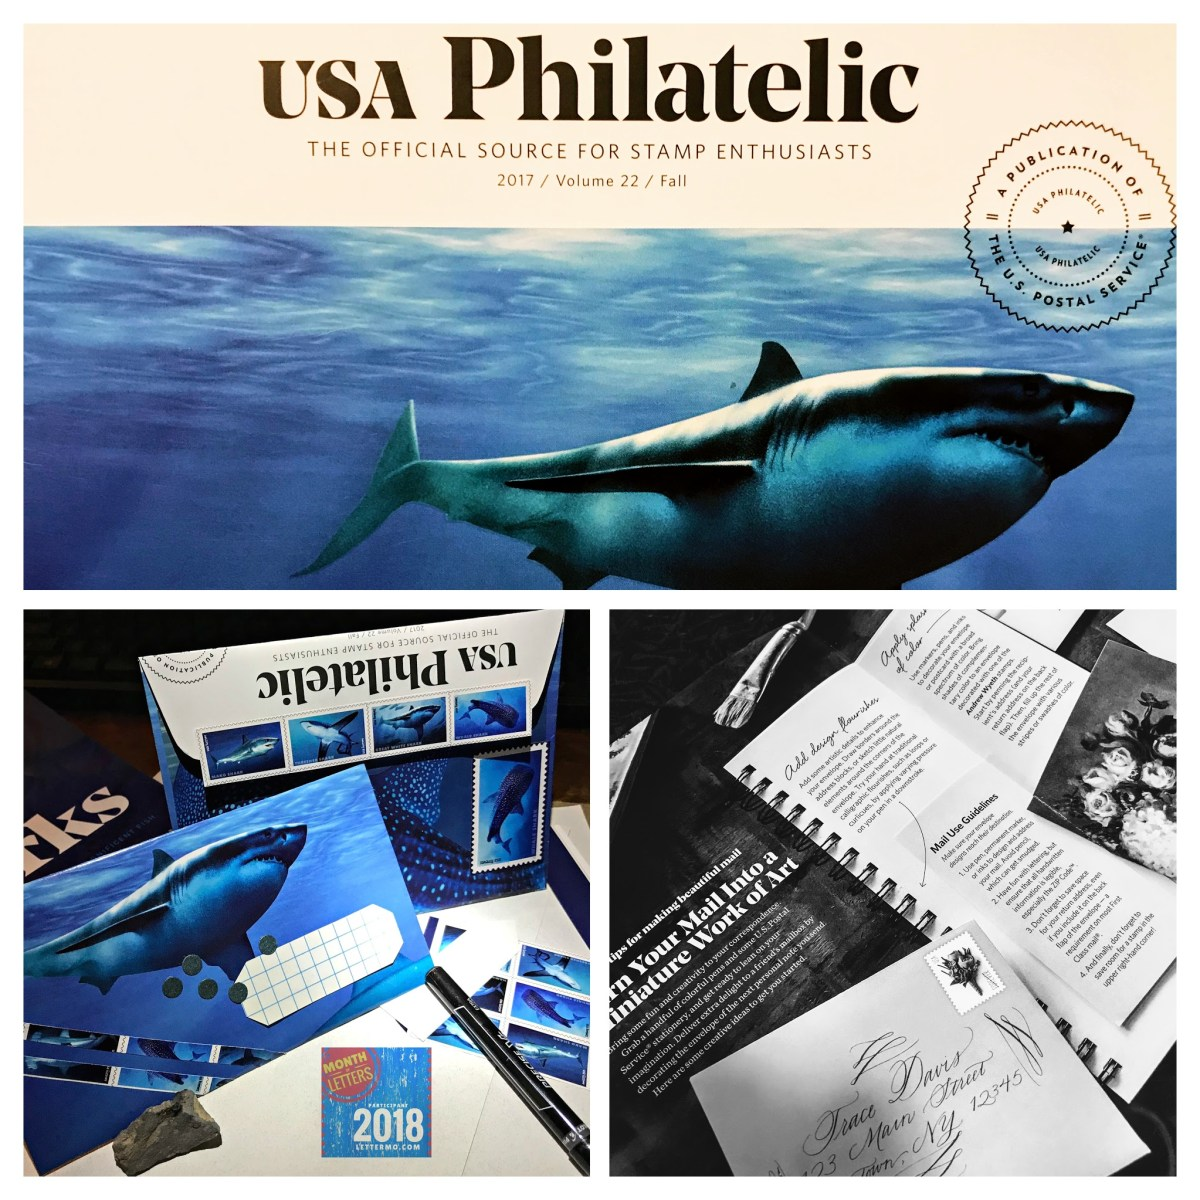 USA Philatelic Catalog, Stamp Increases, Mail Art | Lettermo com